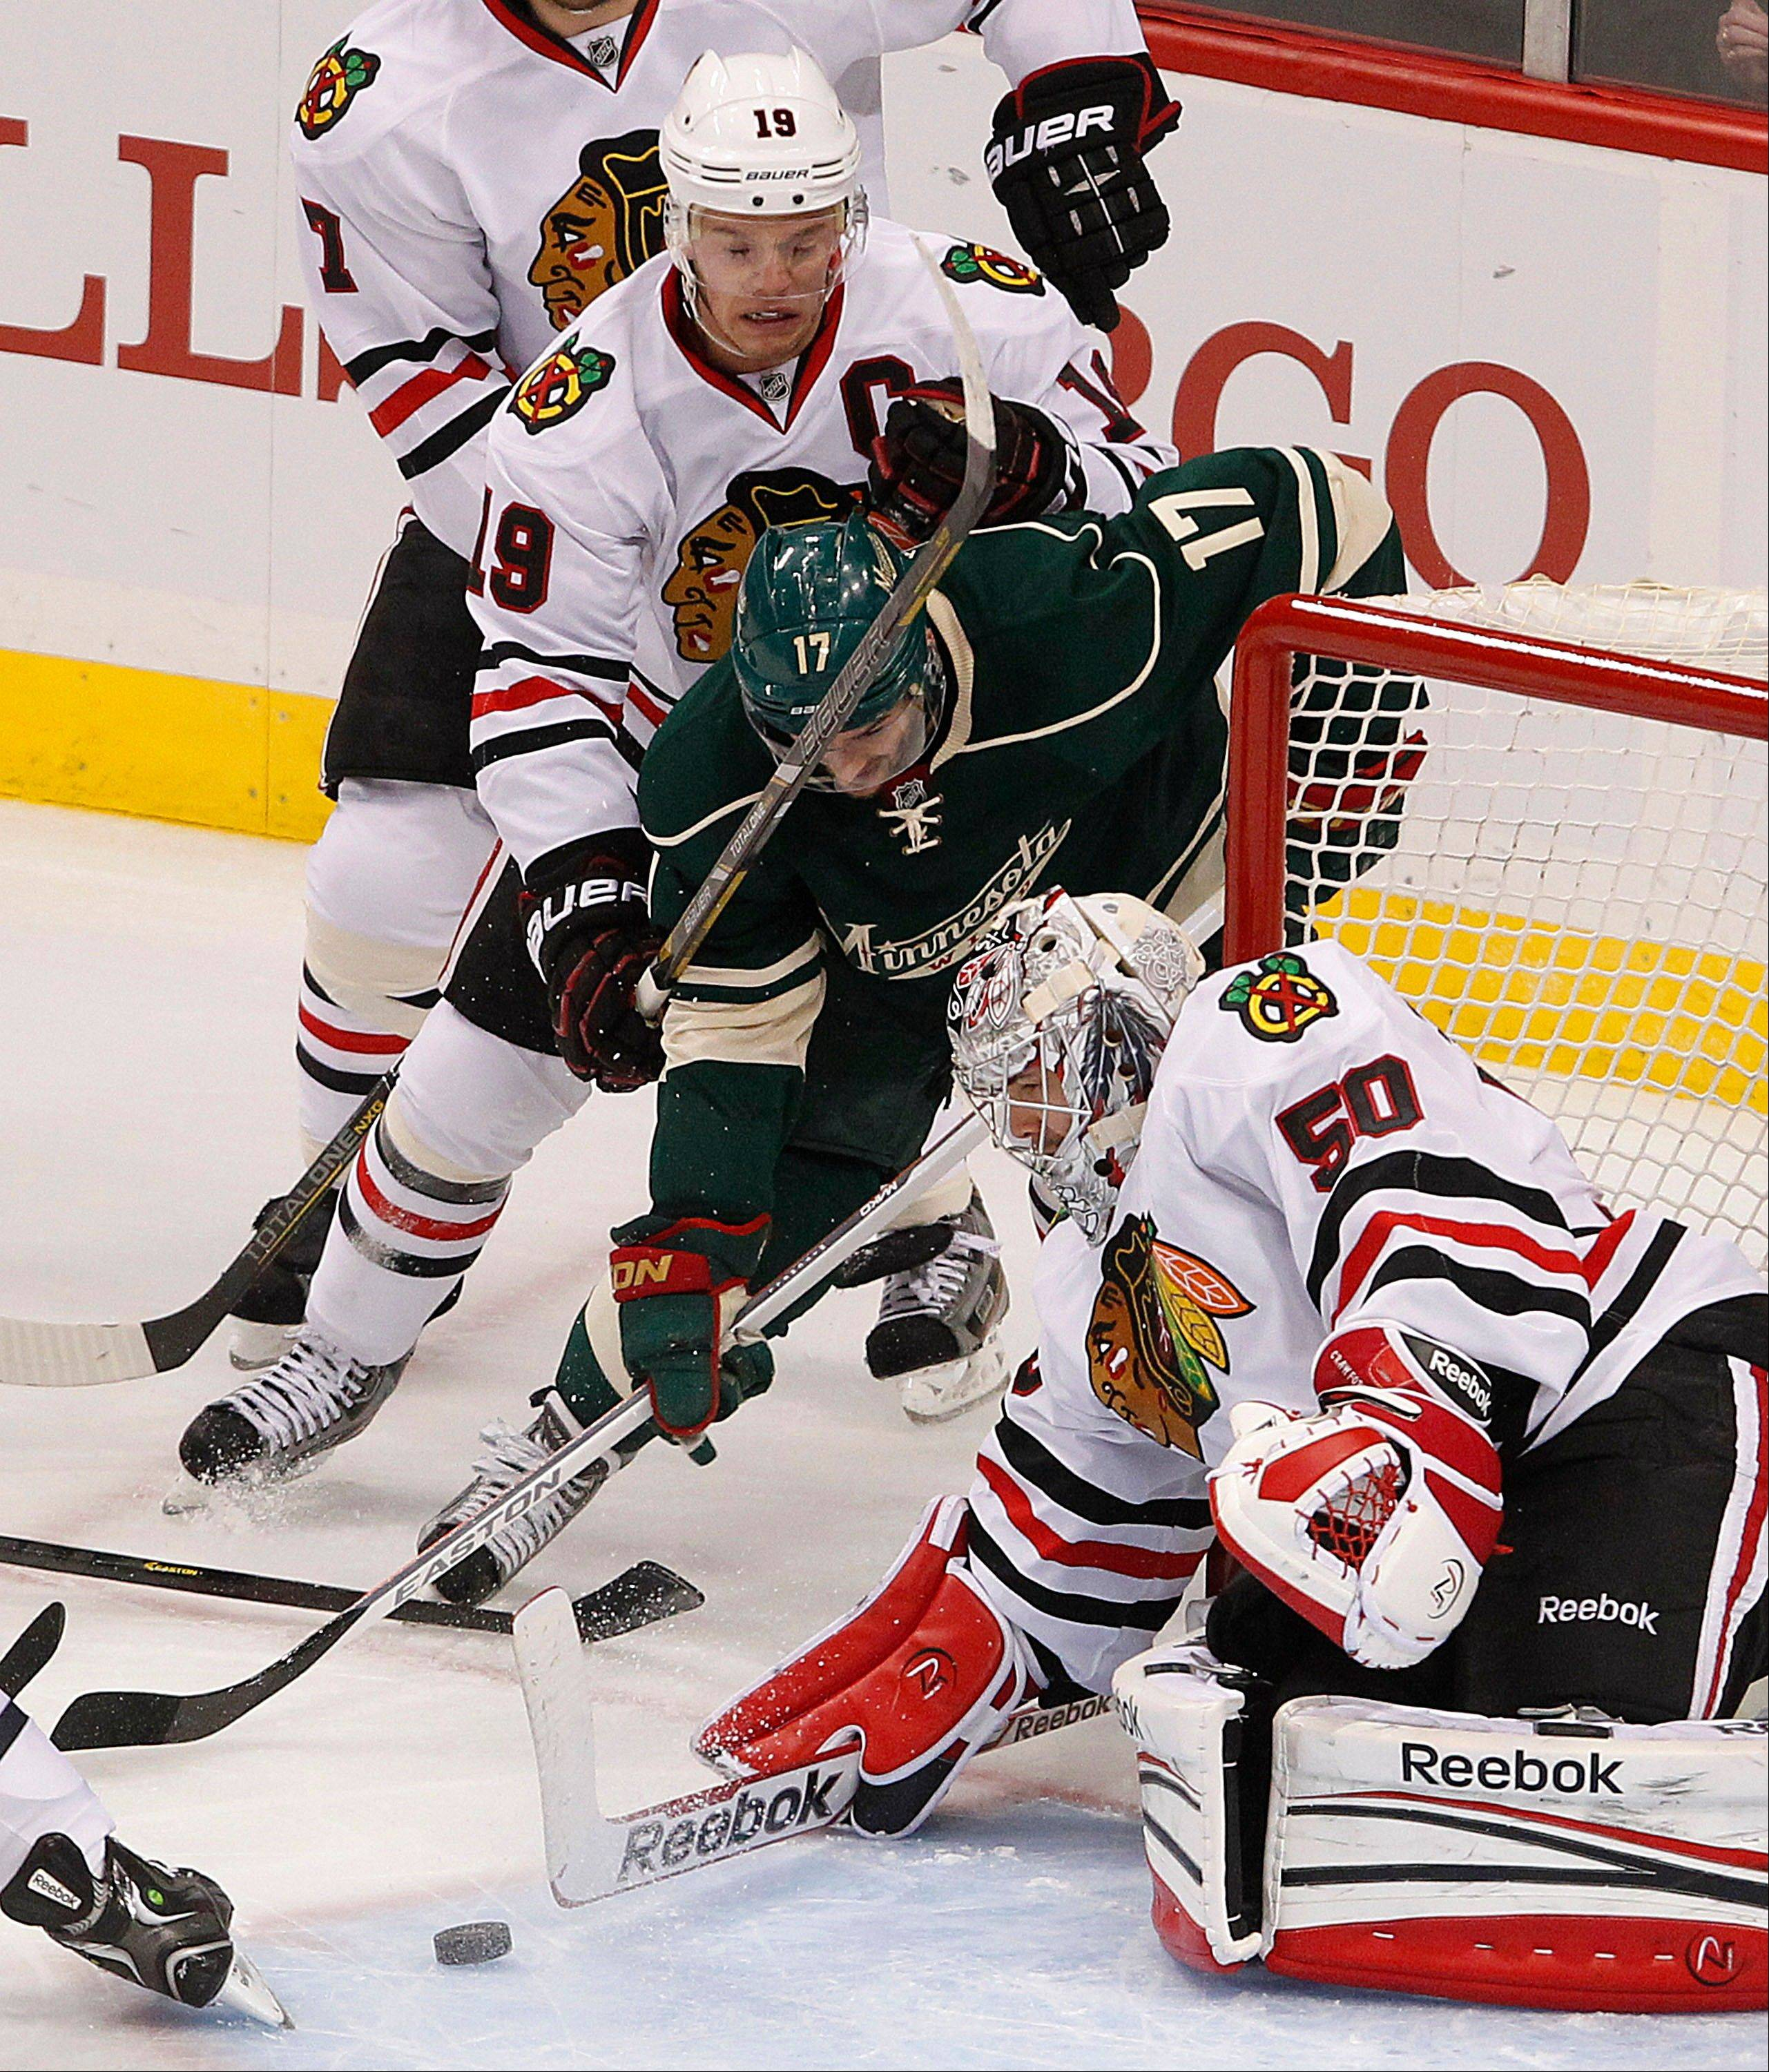 Blackhawks' goalie Corey Crawford blocks a shot by the Wild's Torrey Mitchell in Game 3 on Sunday.